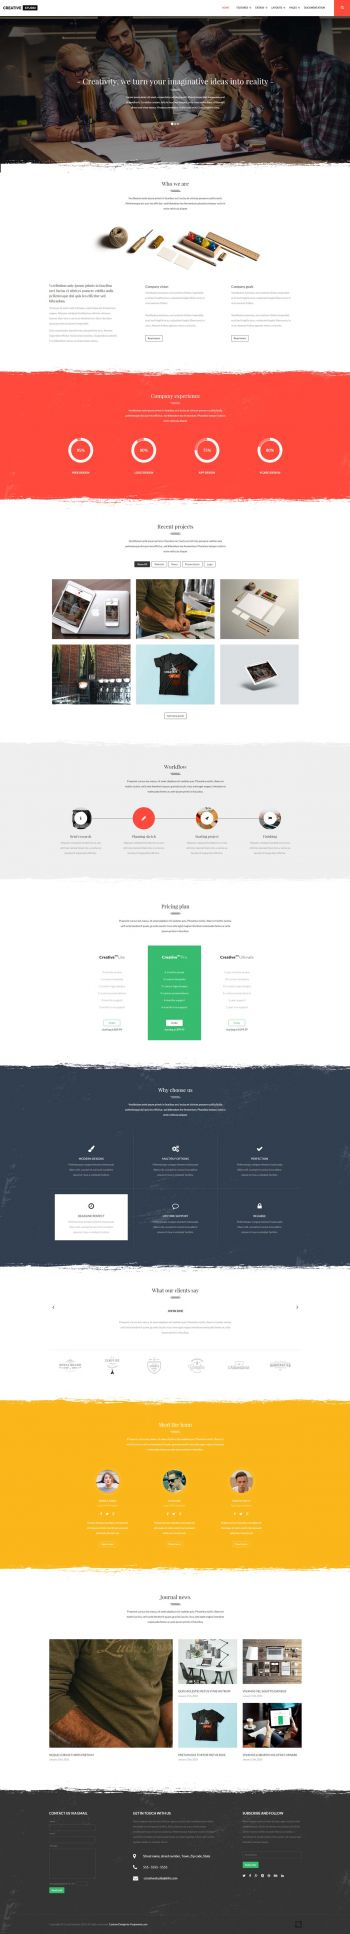 Creativestudio - Multipurpose Joomla Template